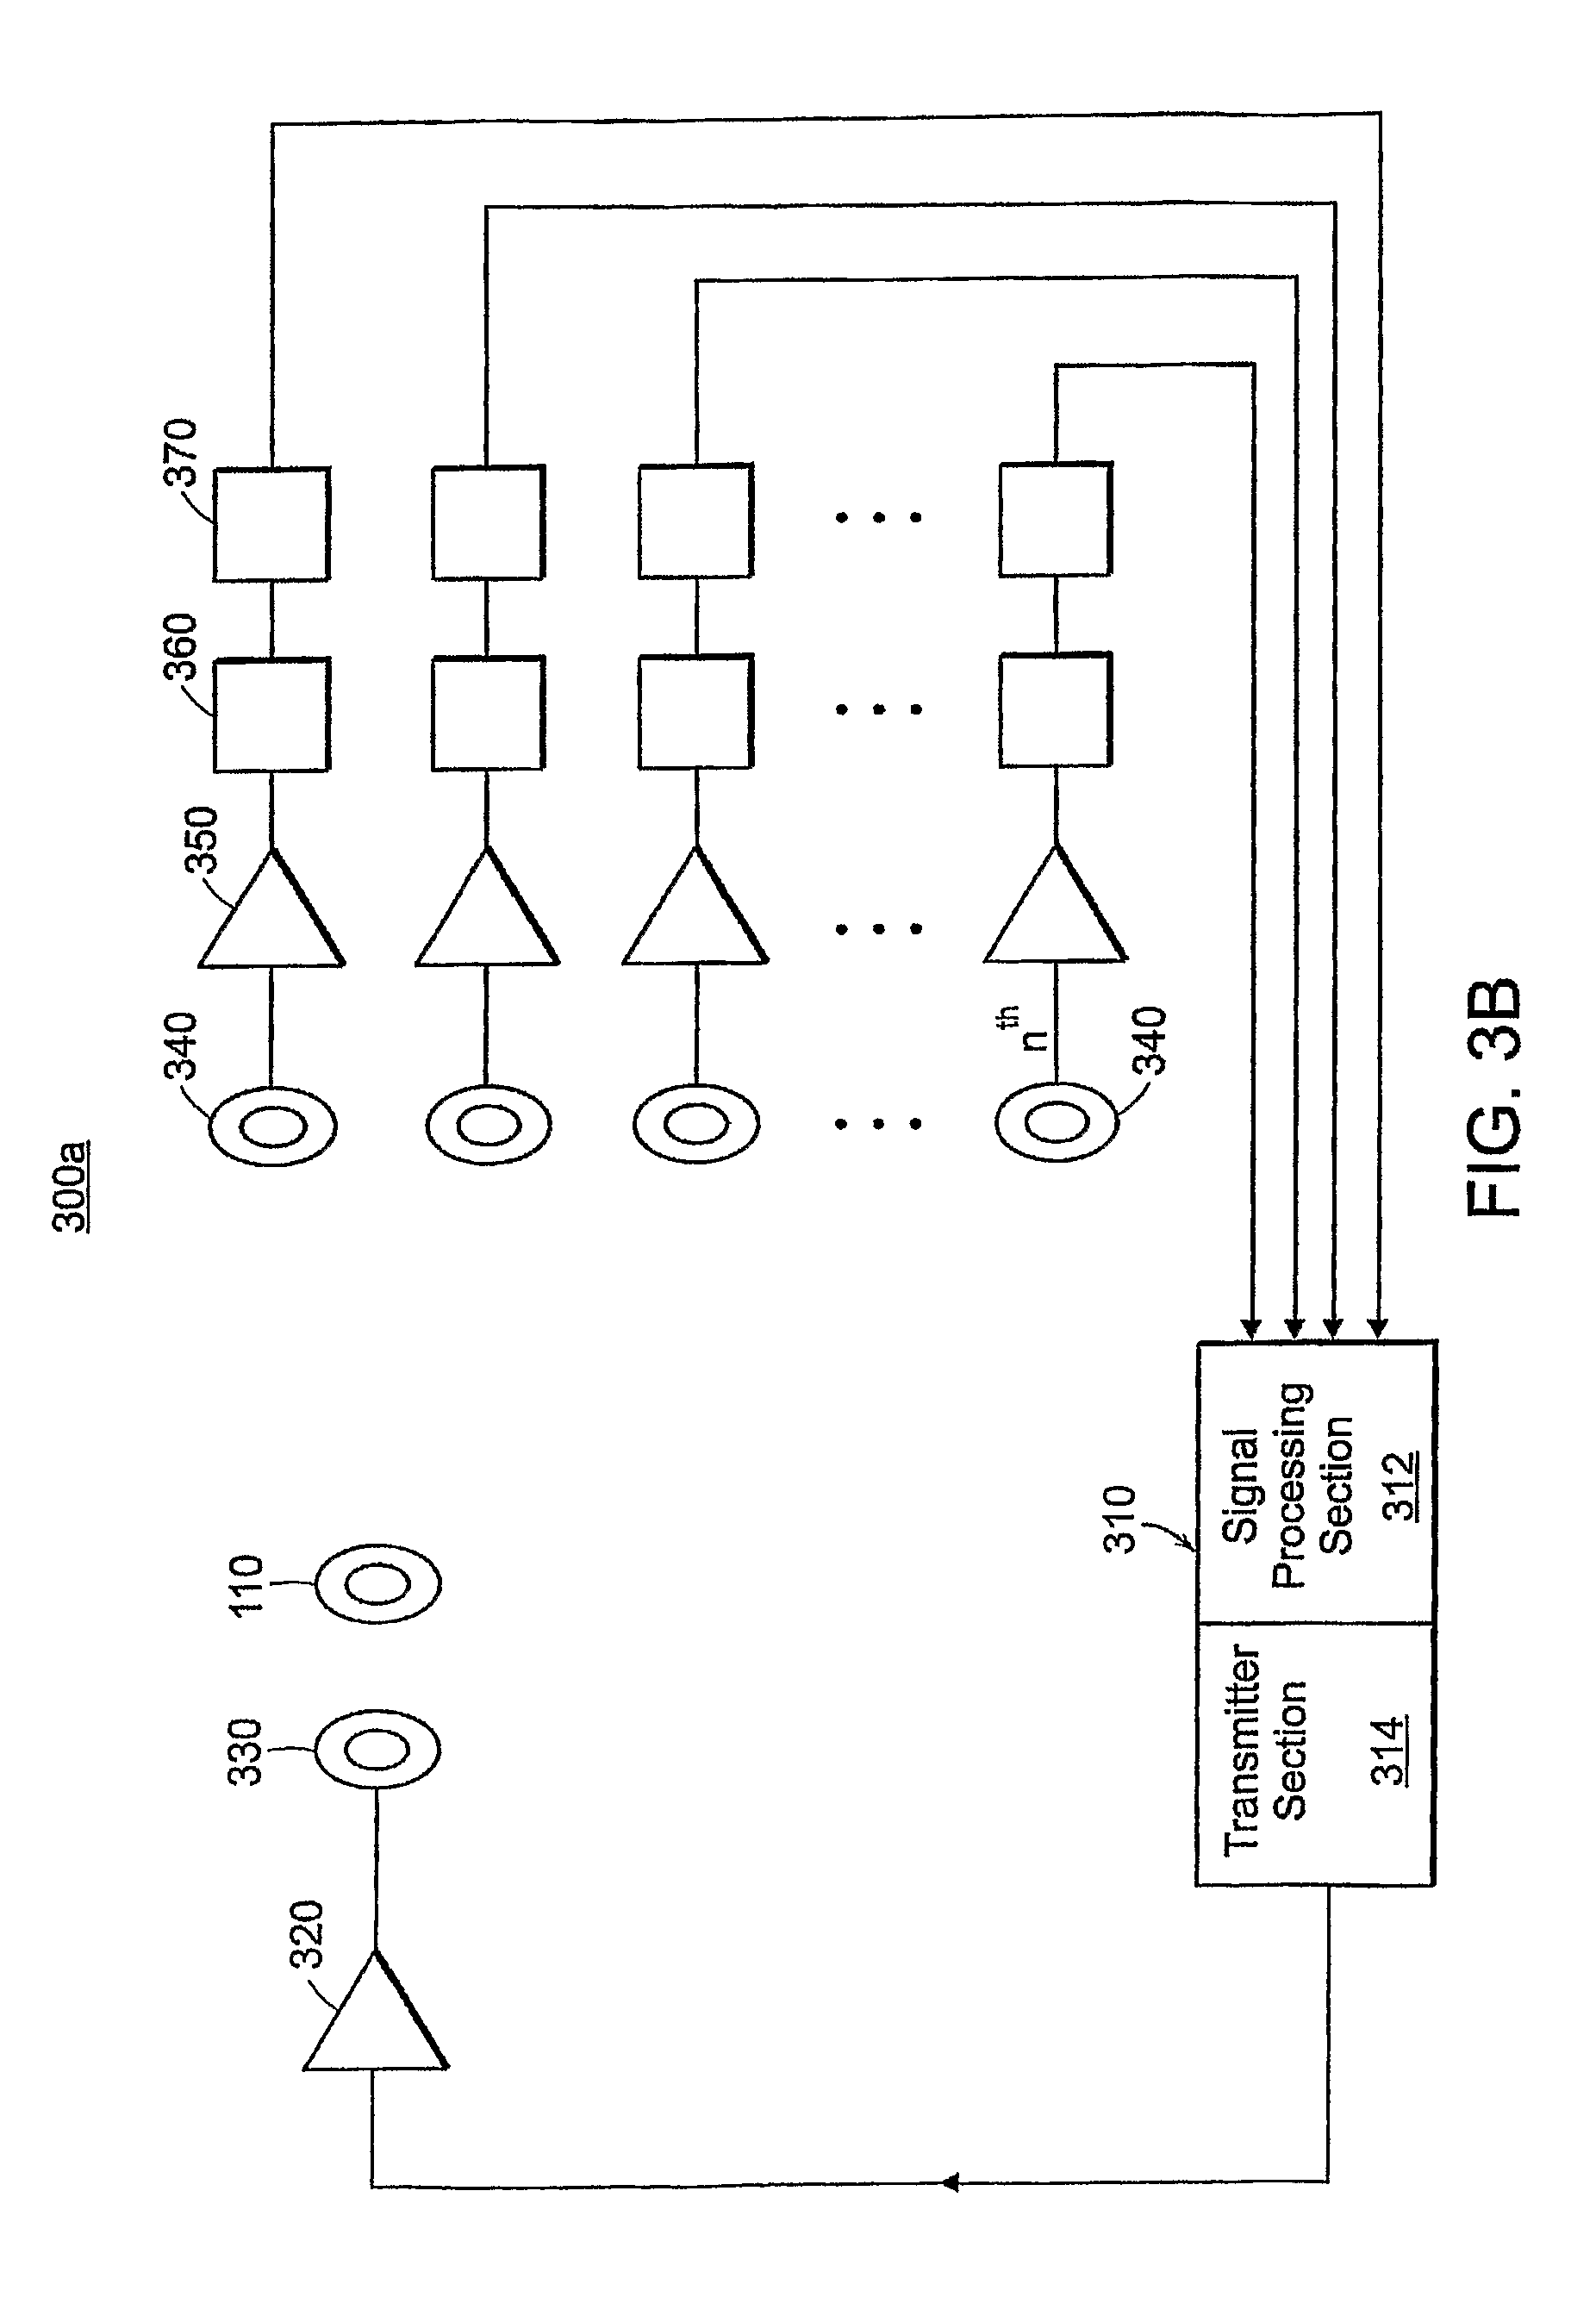 hight resolution of a thermostat to honeywell wiring diagrams ac units for dmx 3 pin wiring diagram dmx wiring diagram raw